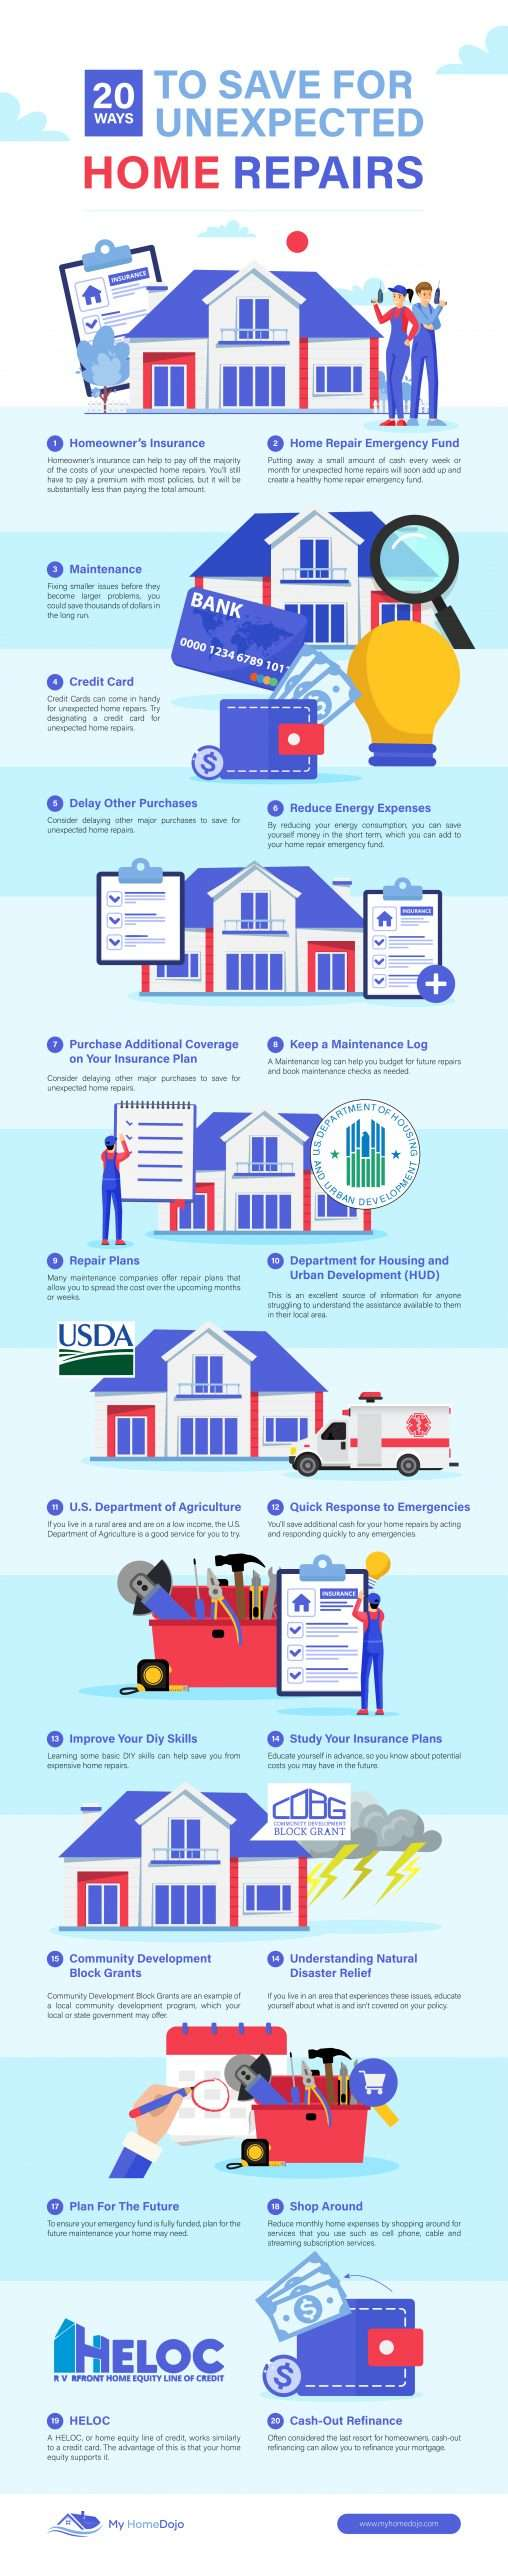 20 ways to save for unexpected home expenses